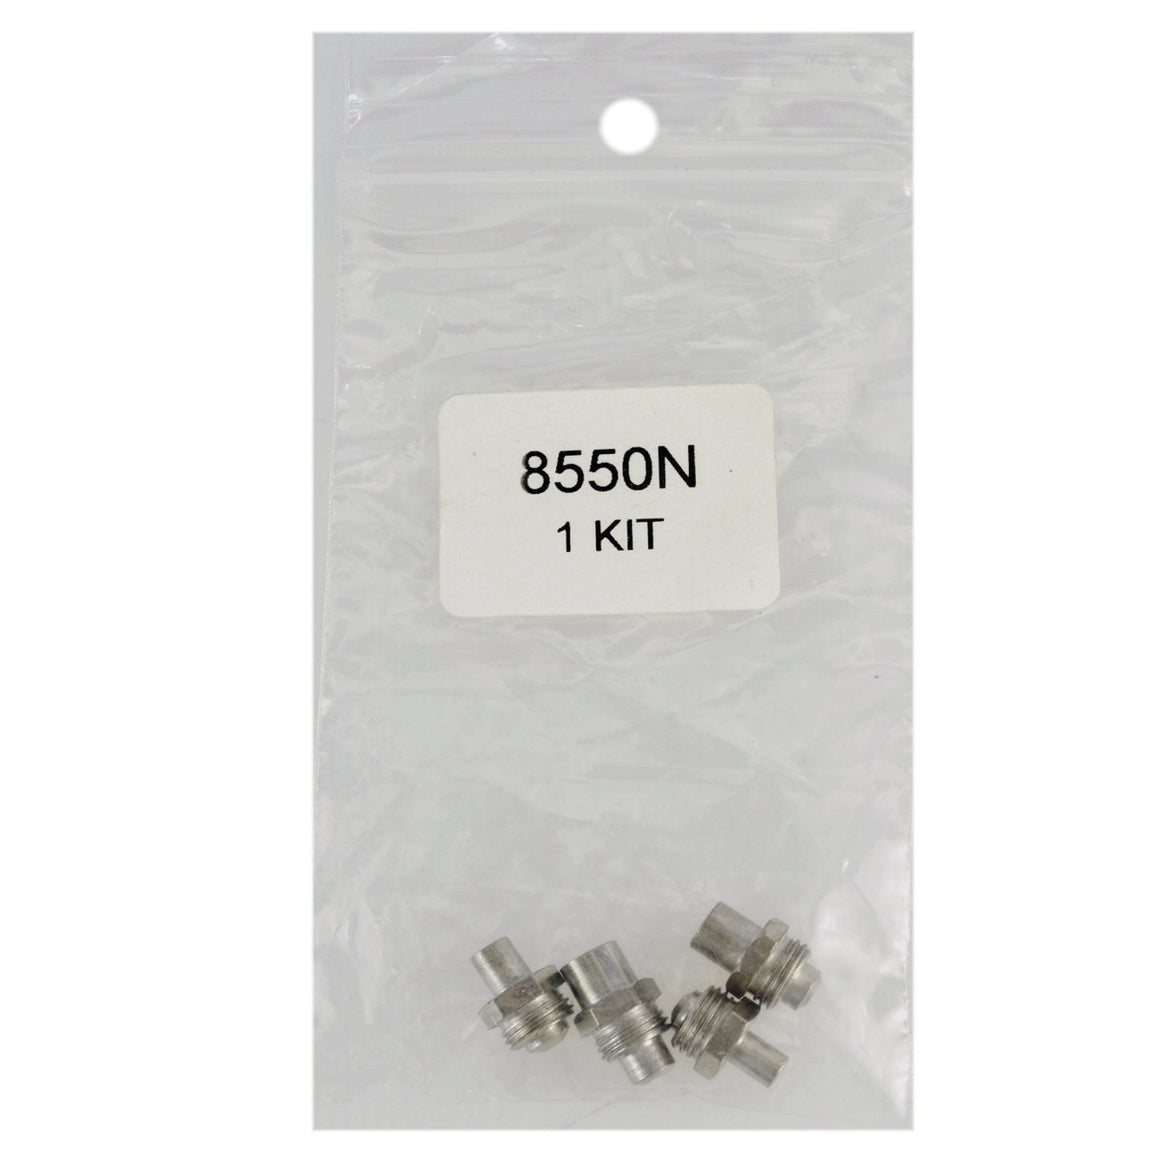 8550N Nosepiece Kit for 8550/8650 Rivet Tool